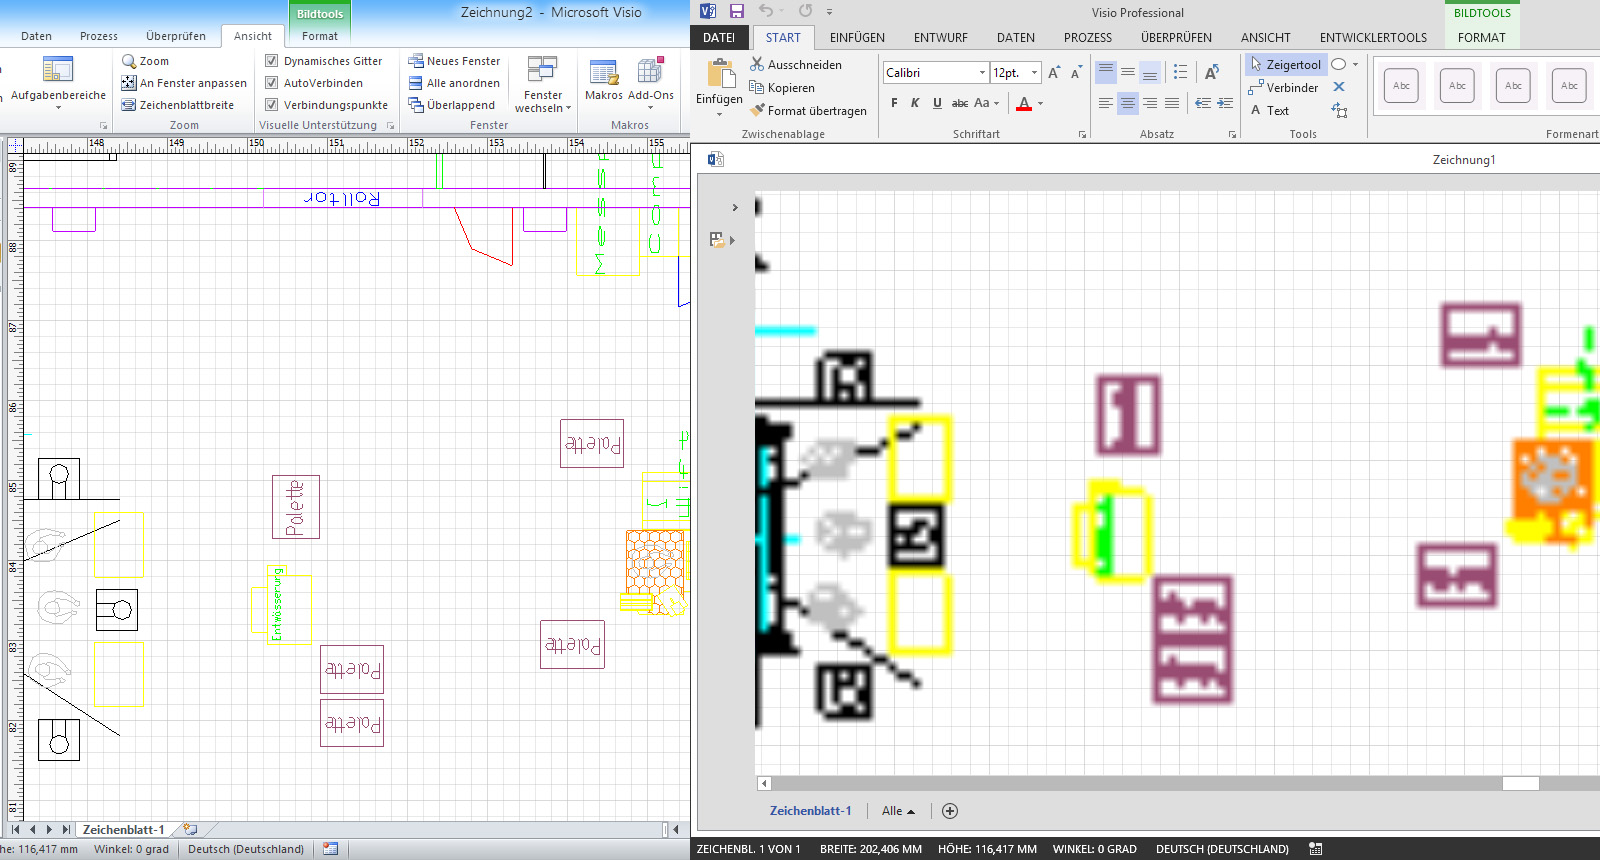 visio diagram comparison legrand key card switch wiring poor rendering quality of images and cad in 2013